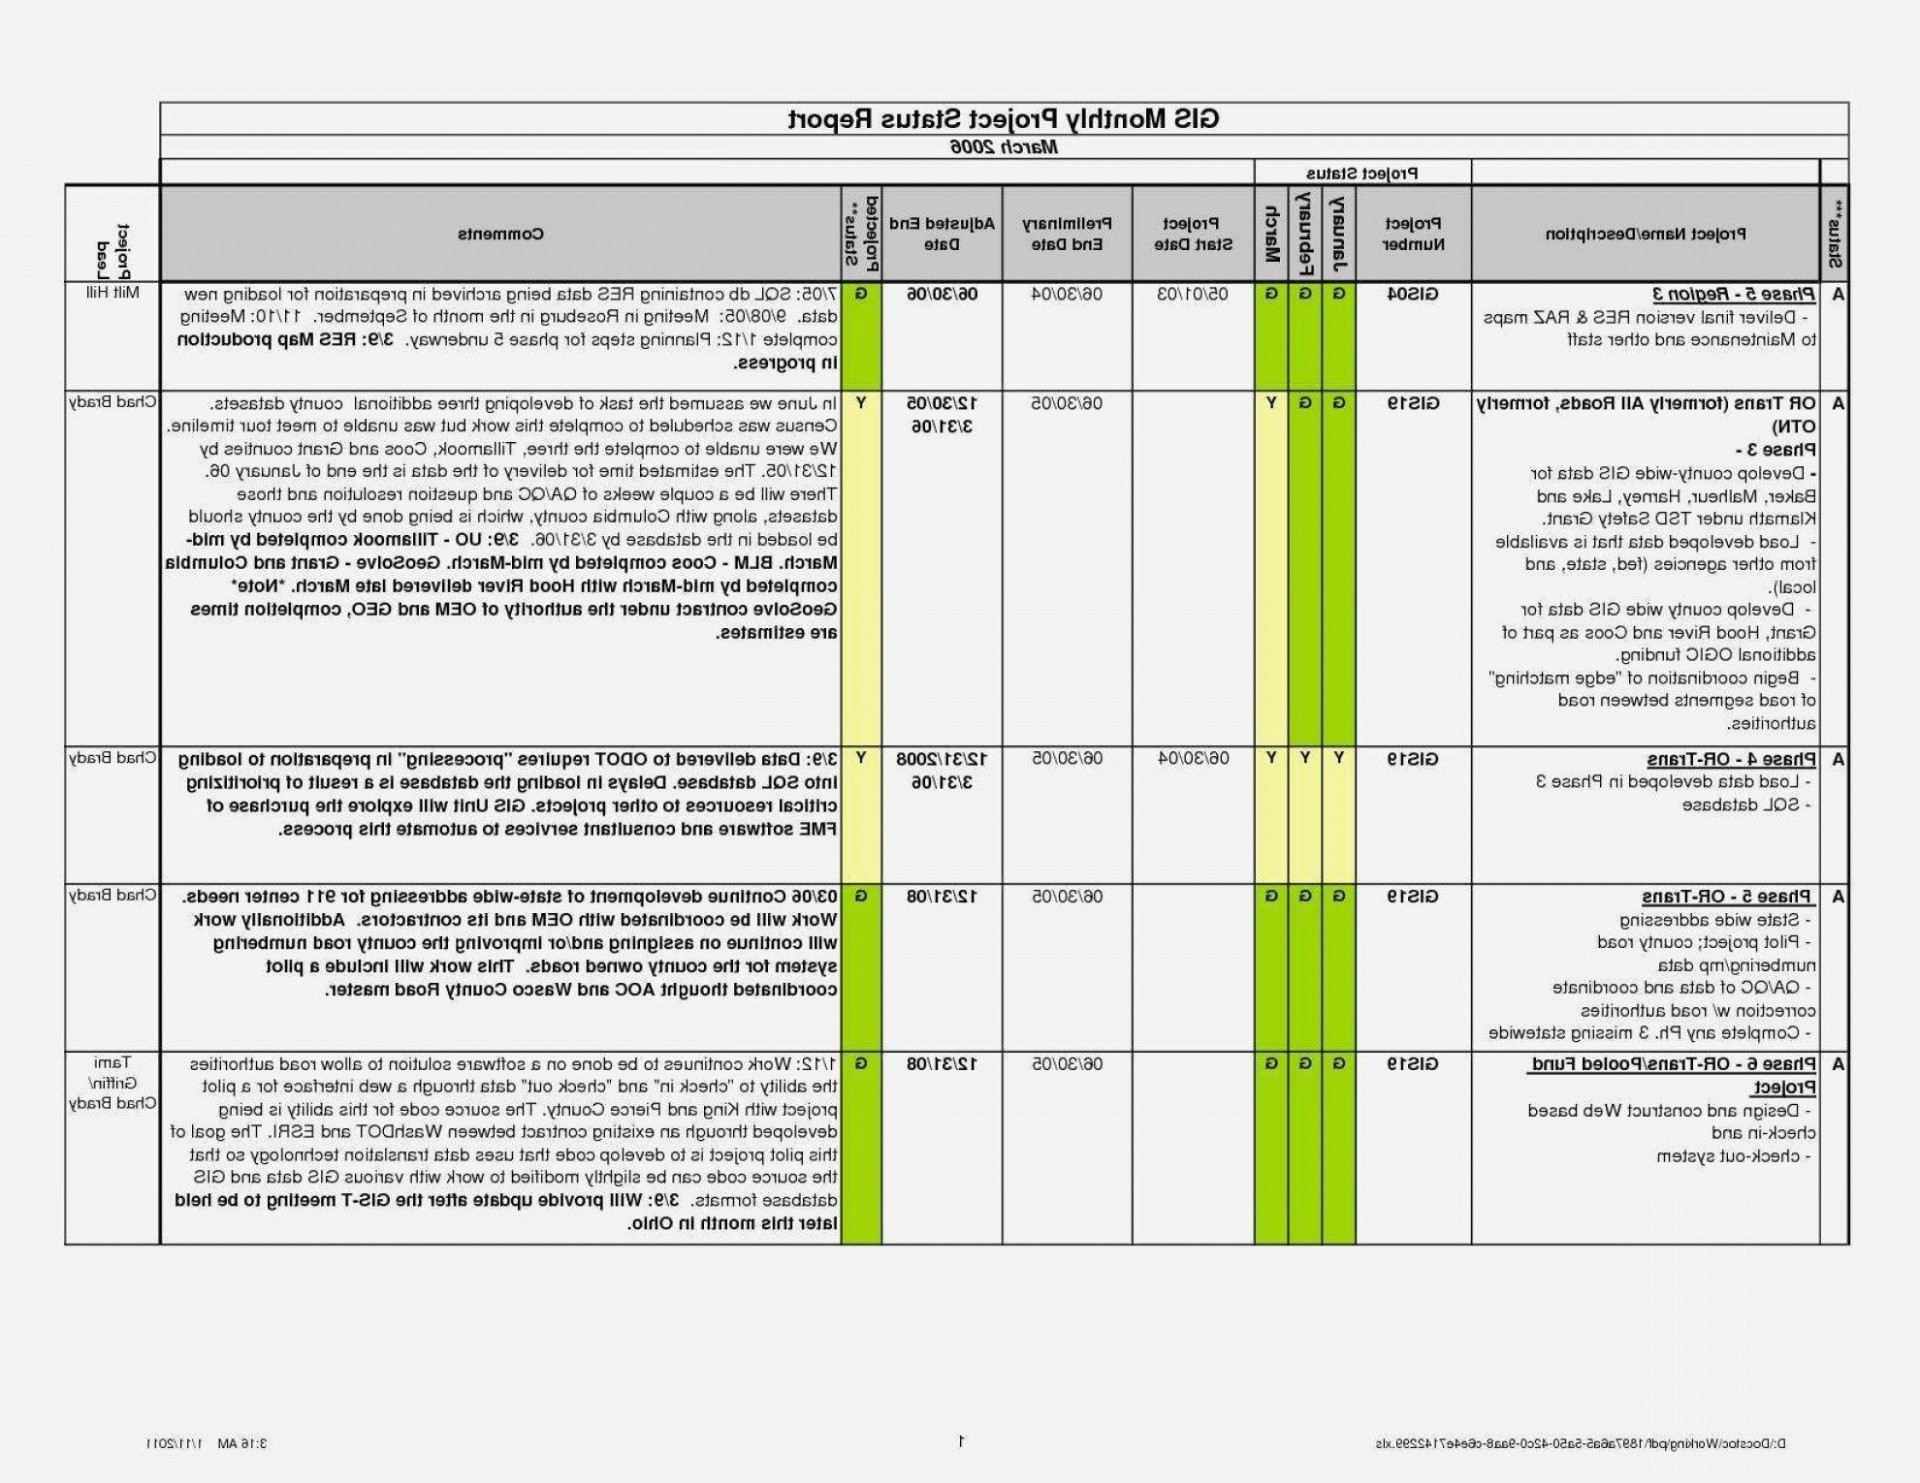 002 Rare Project Management Report Template Excel Image  Weekly Statu Progres1920